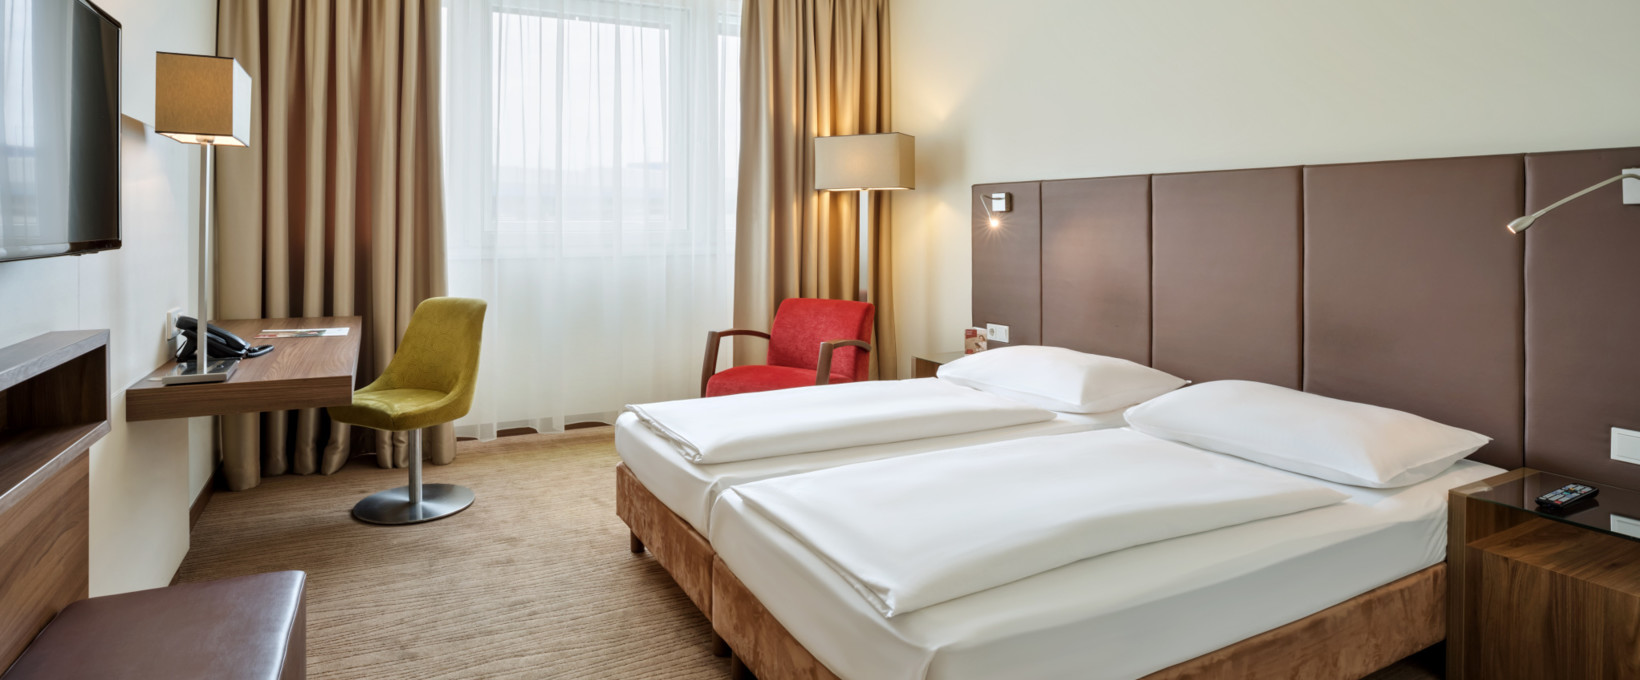 Classic Room with twin bed and night stand | Hotel Doppio in Vienna